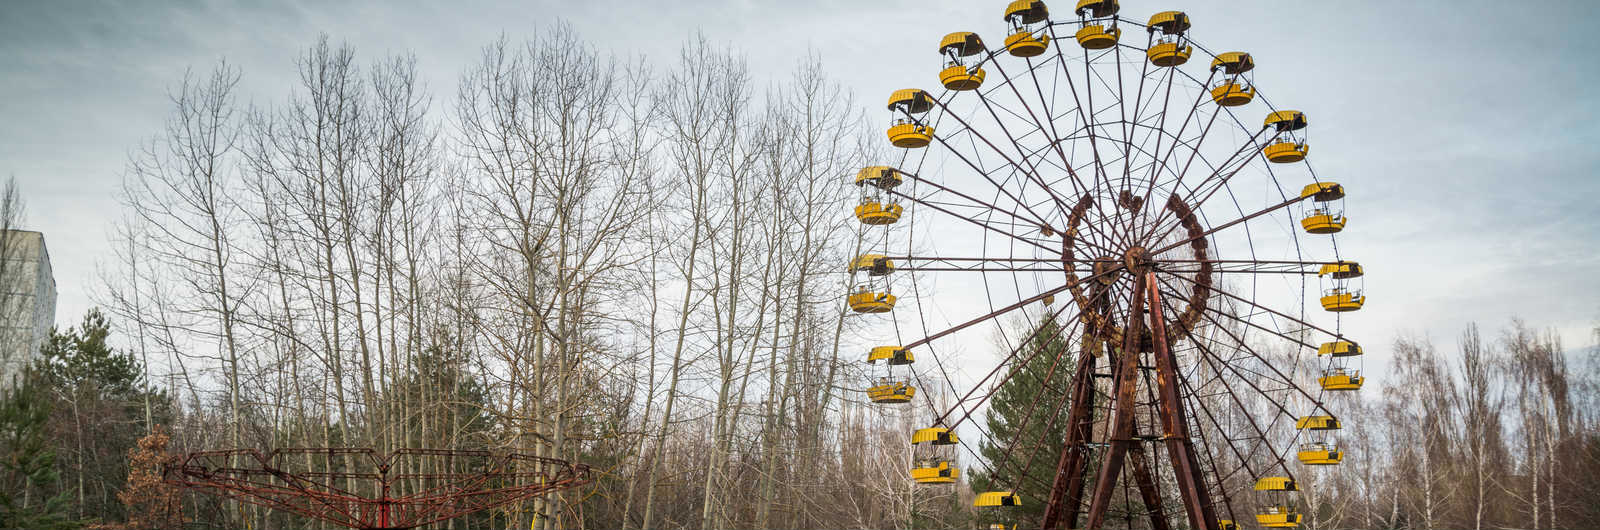 You Can Visit Chernobyl's Exclusion Zone